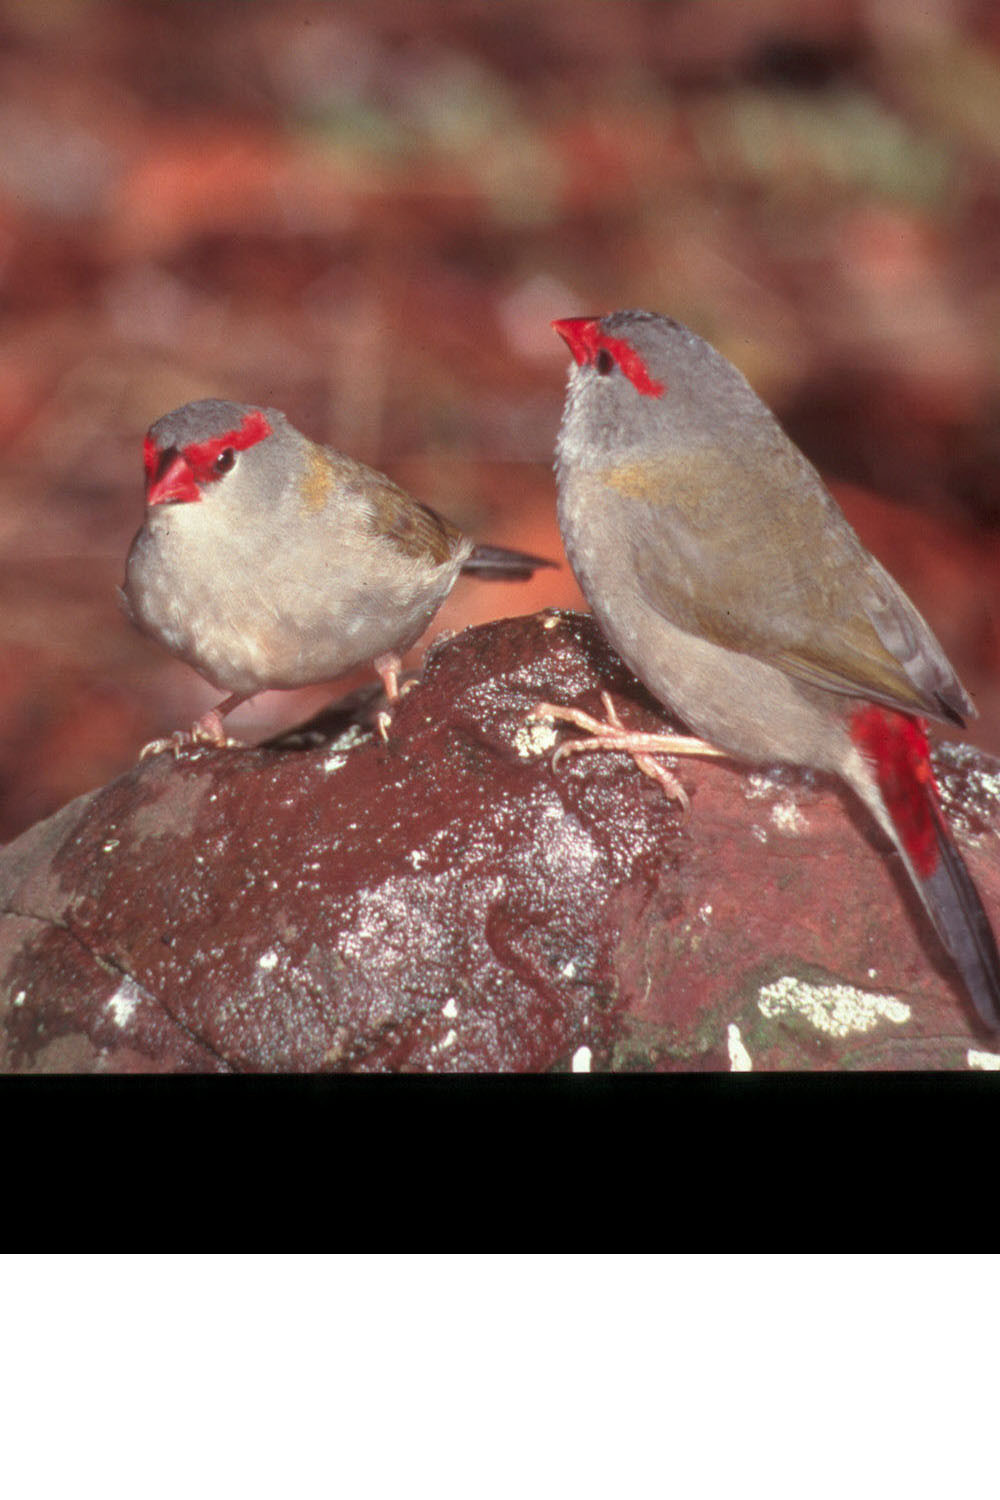 Red-browed Finch. These birds have not been recorded on King Island but are one of the bird species that may try and move south to find food. They are seed eaters so may well be seen in farm paddocks or grassy verges.